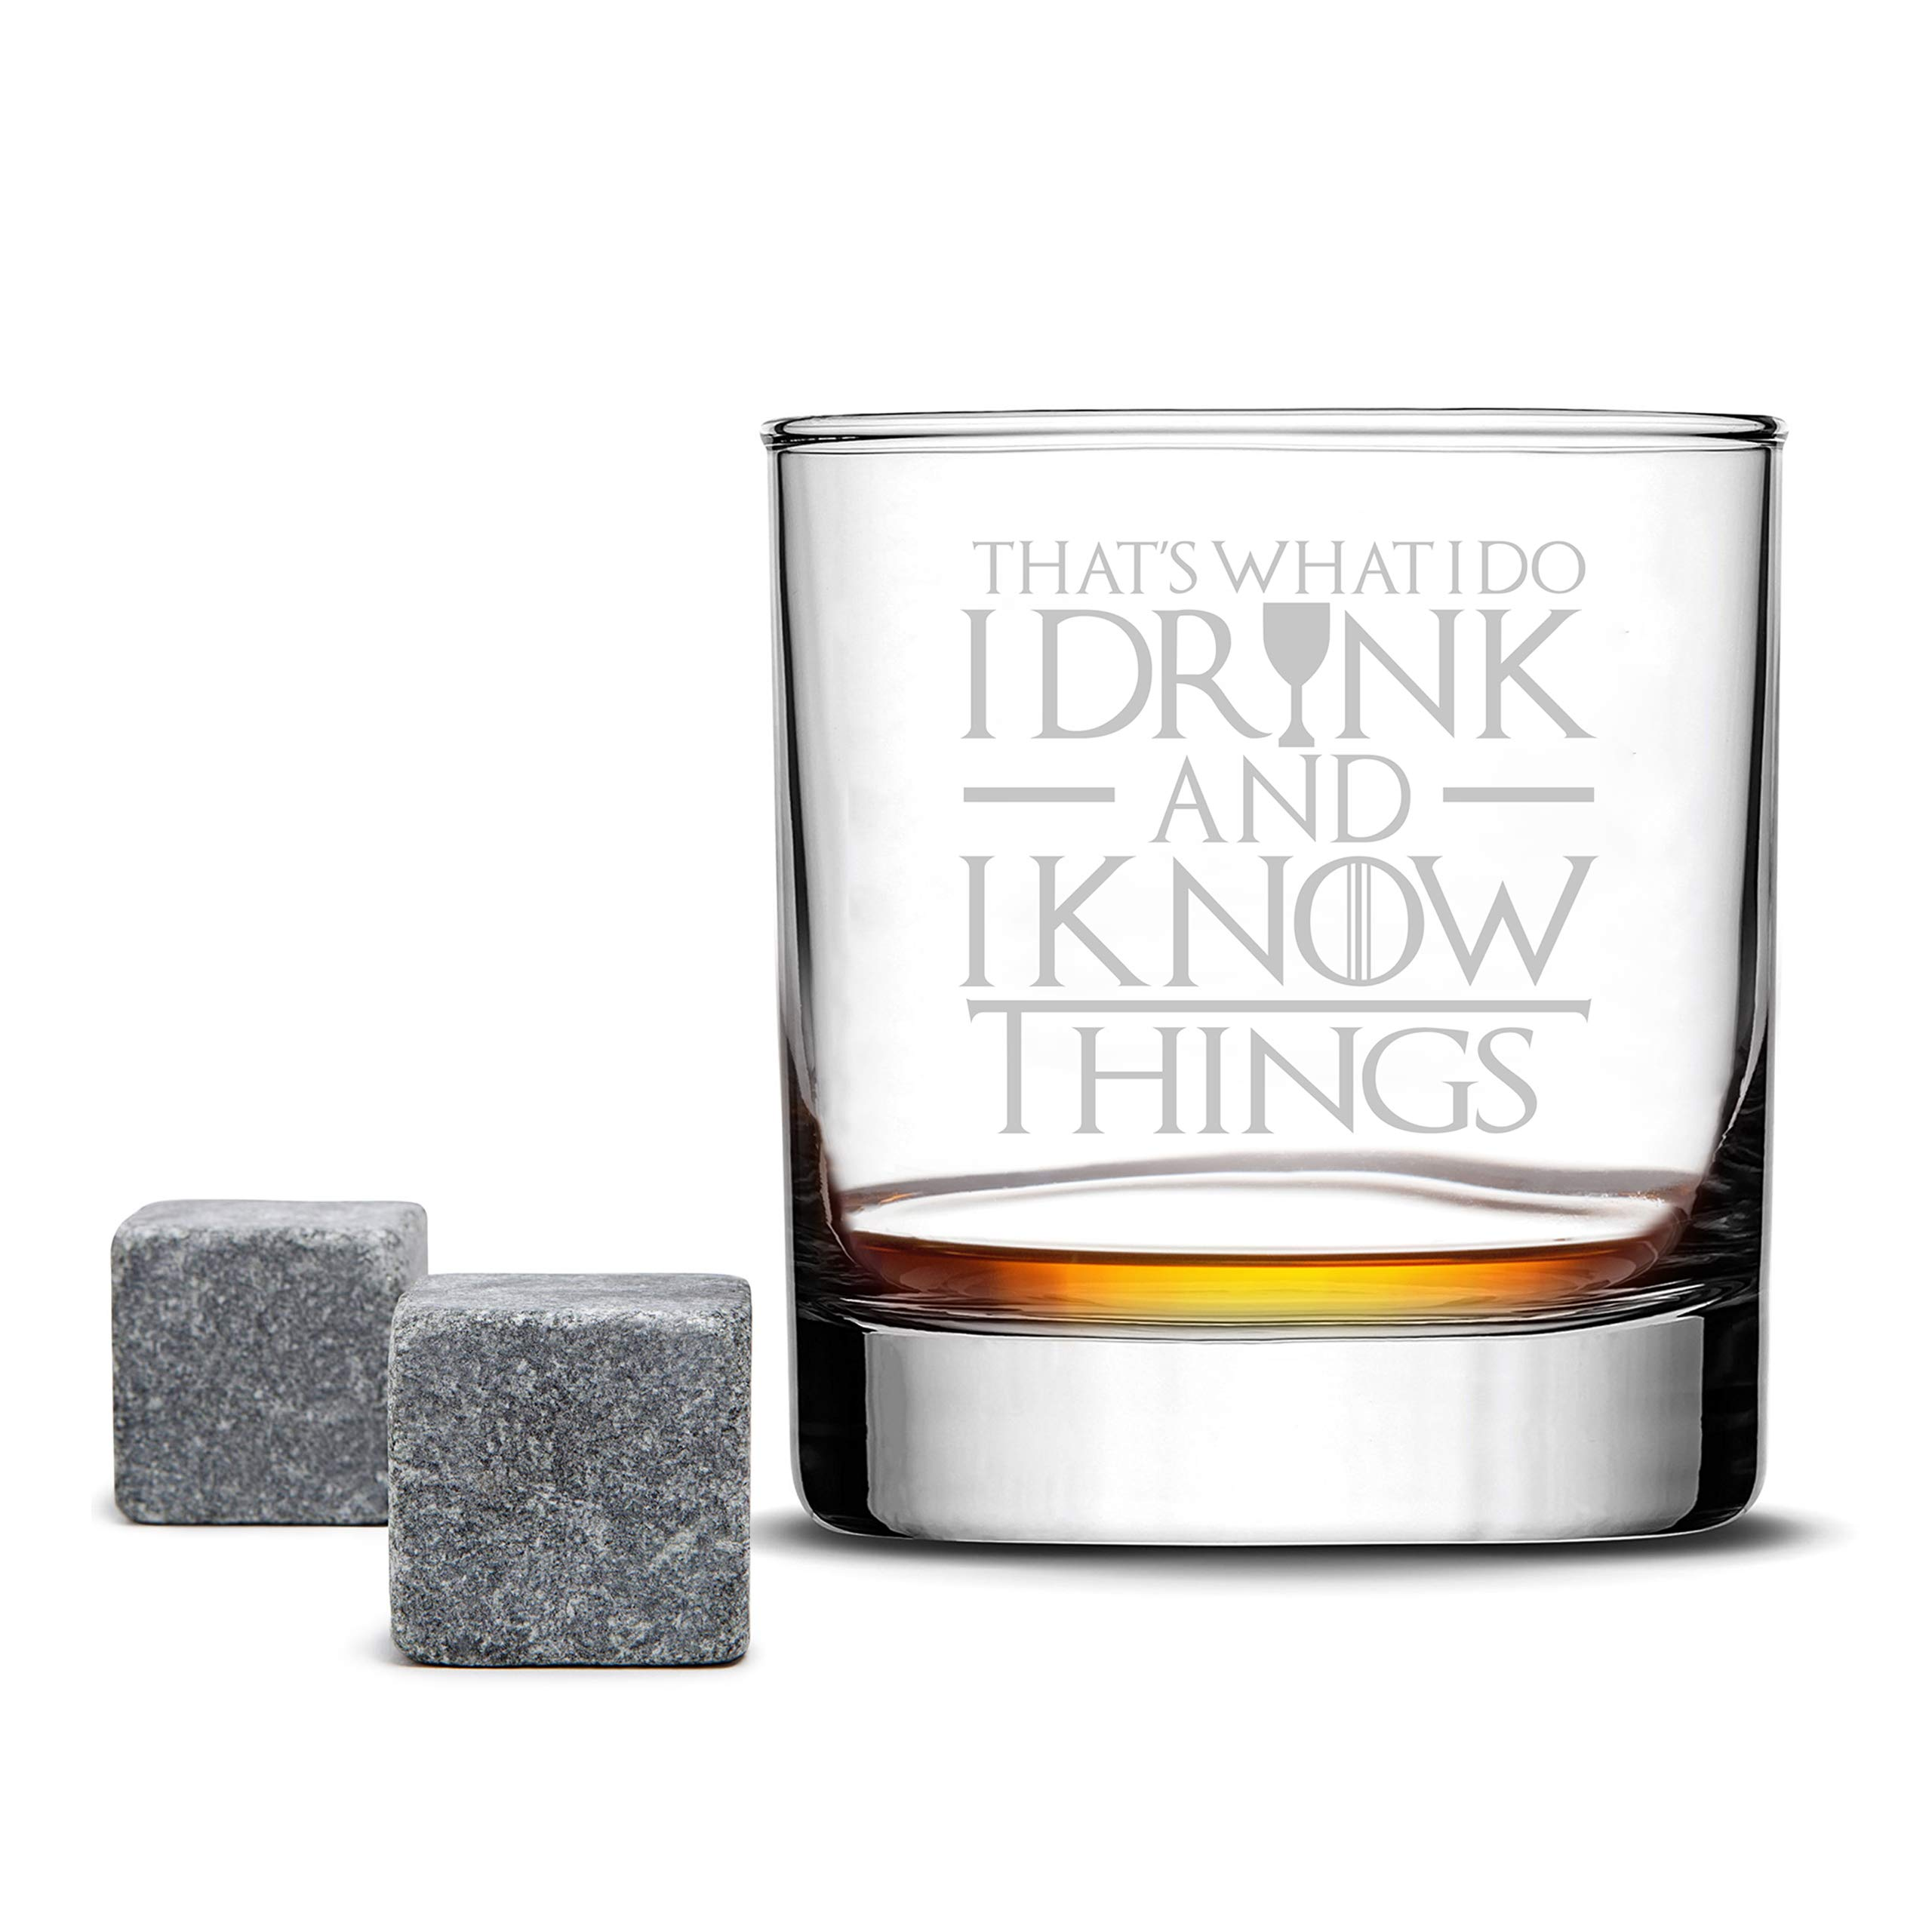 Highball Whiskey Glass - Game of Thrones - I Drink and I Know Things - Drinking Games Glasses for Dad Husband Brother Wife Boyfriend - 10 Oz glass by FOLE INC - Made in USA